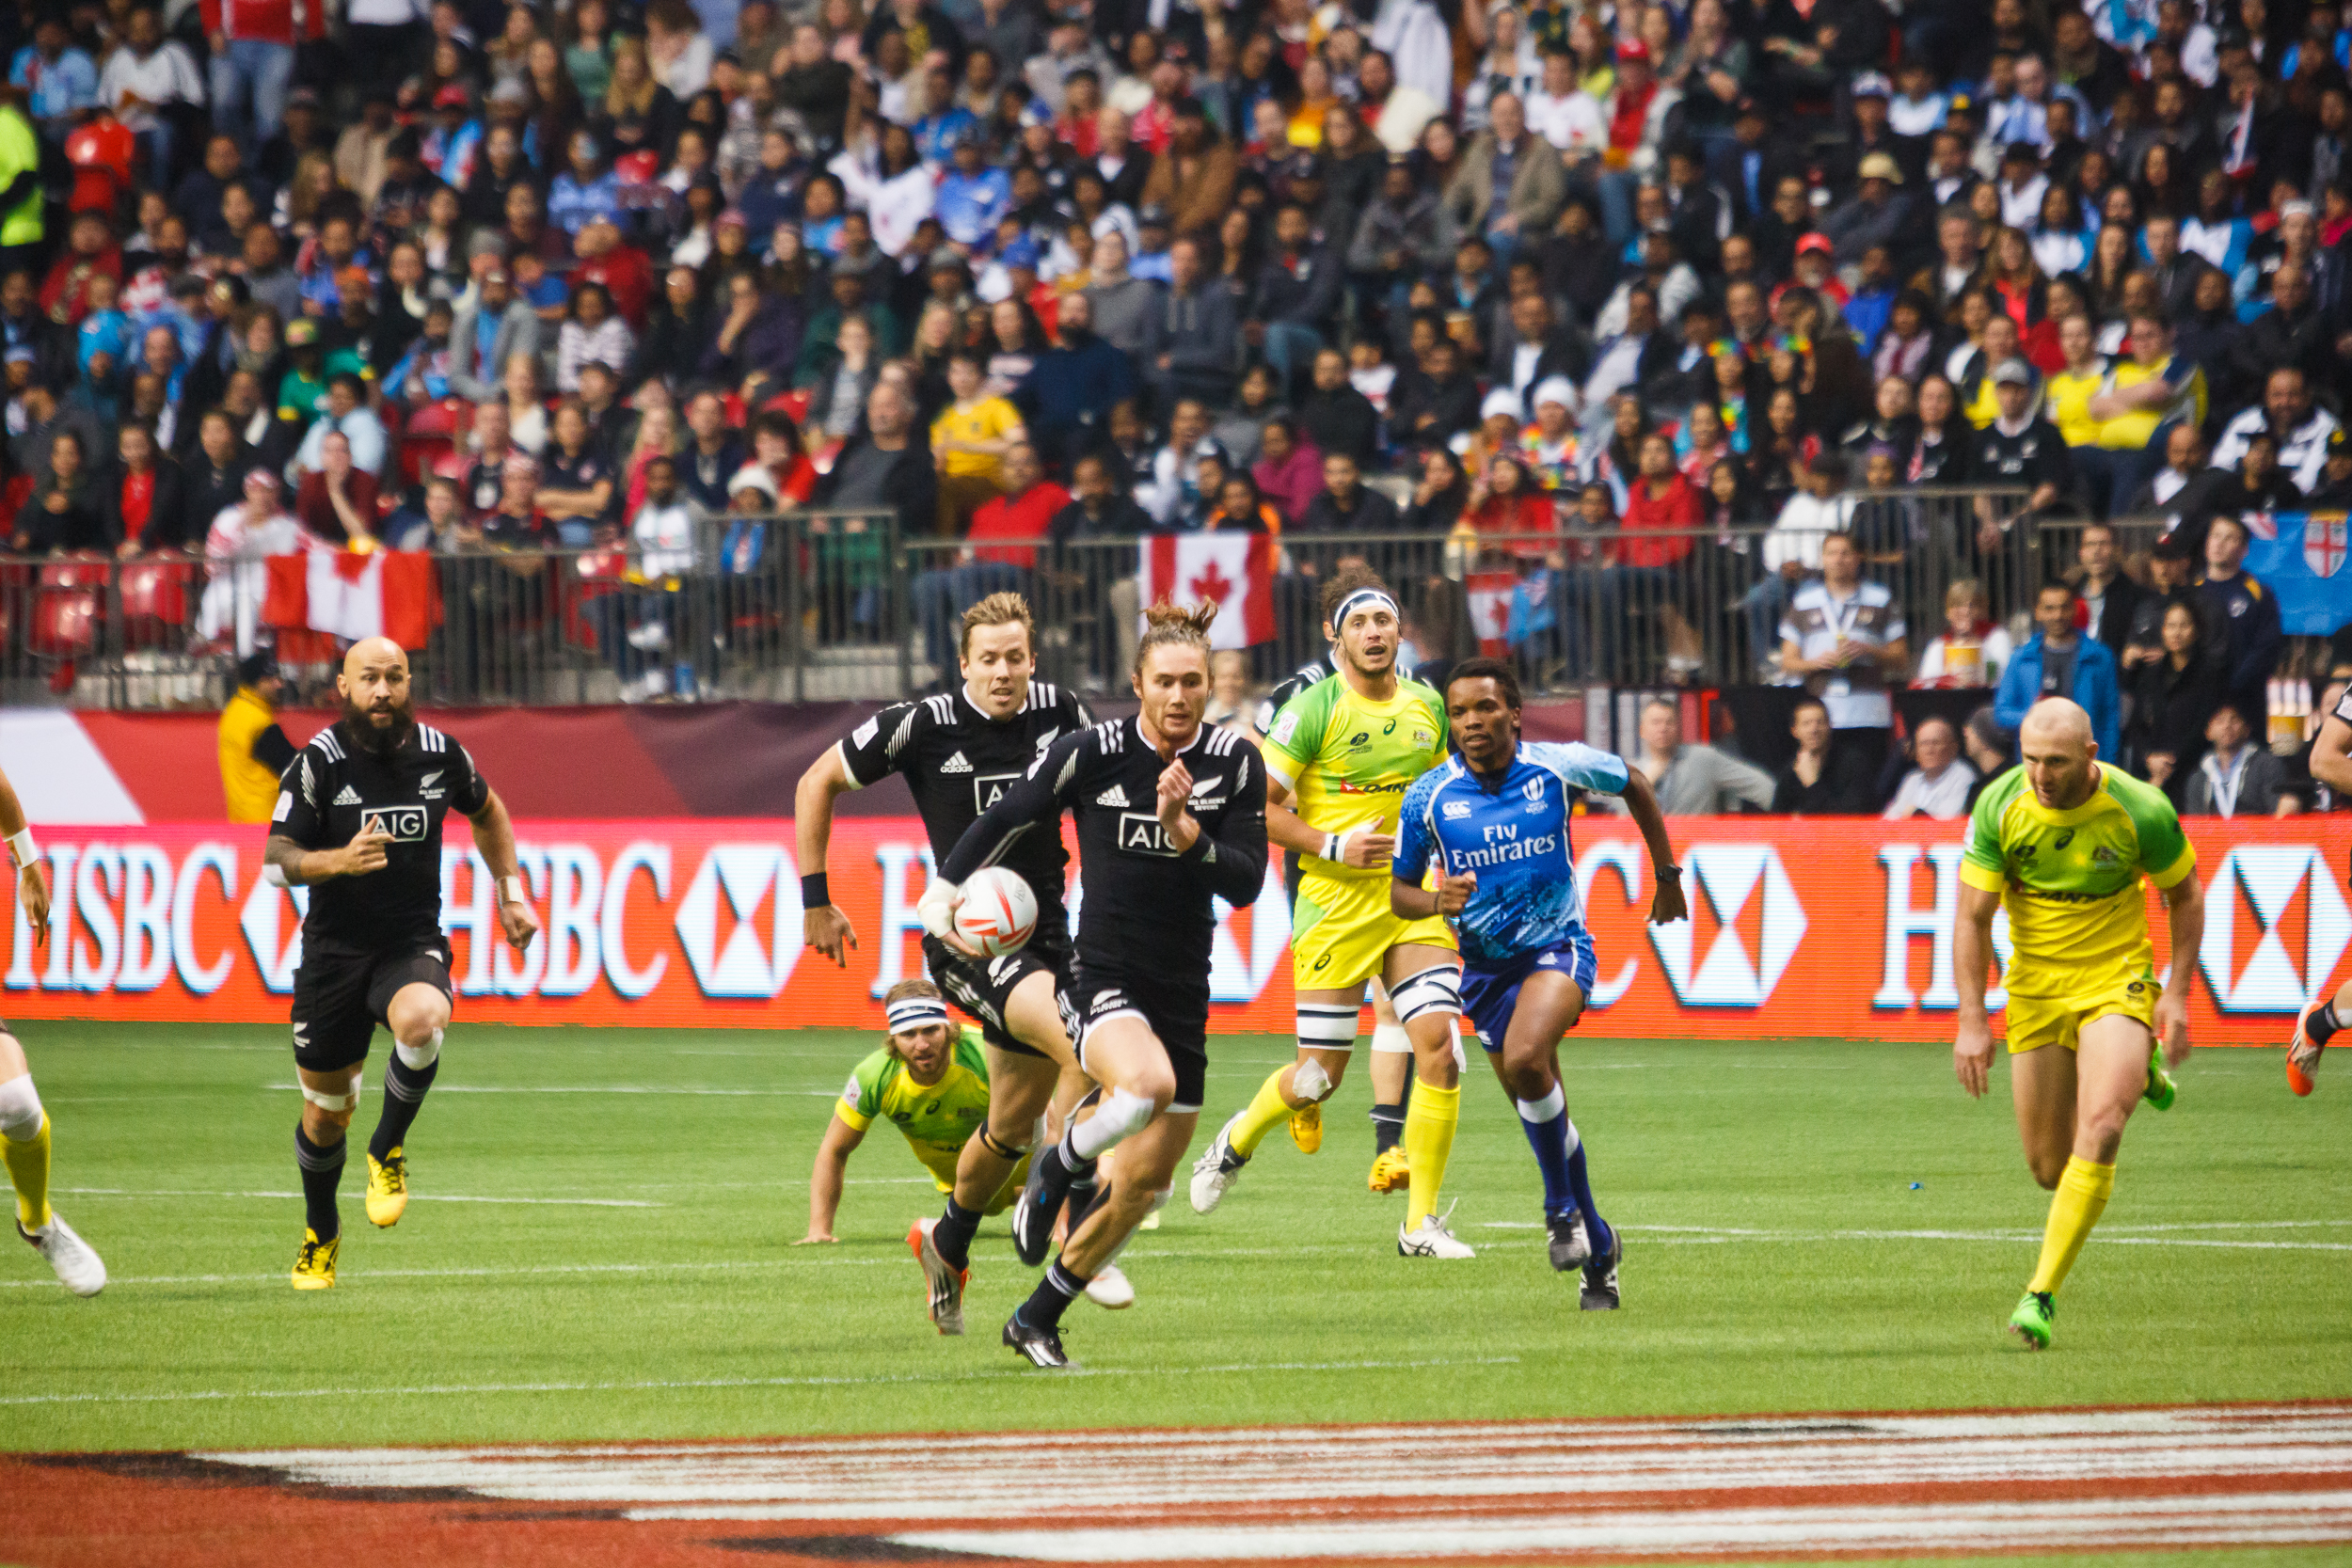 Canada-Rugby-Sevens-photo-46.jpg